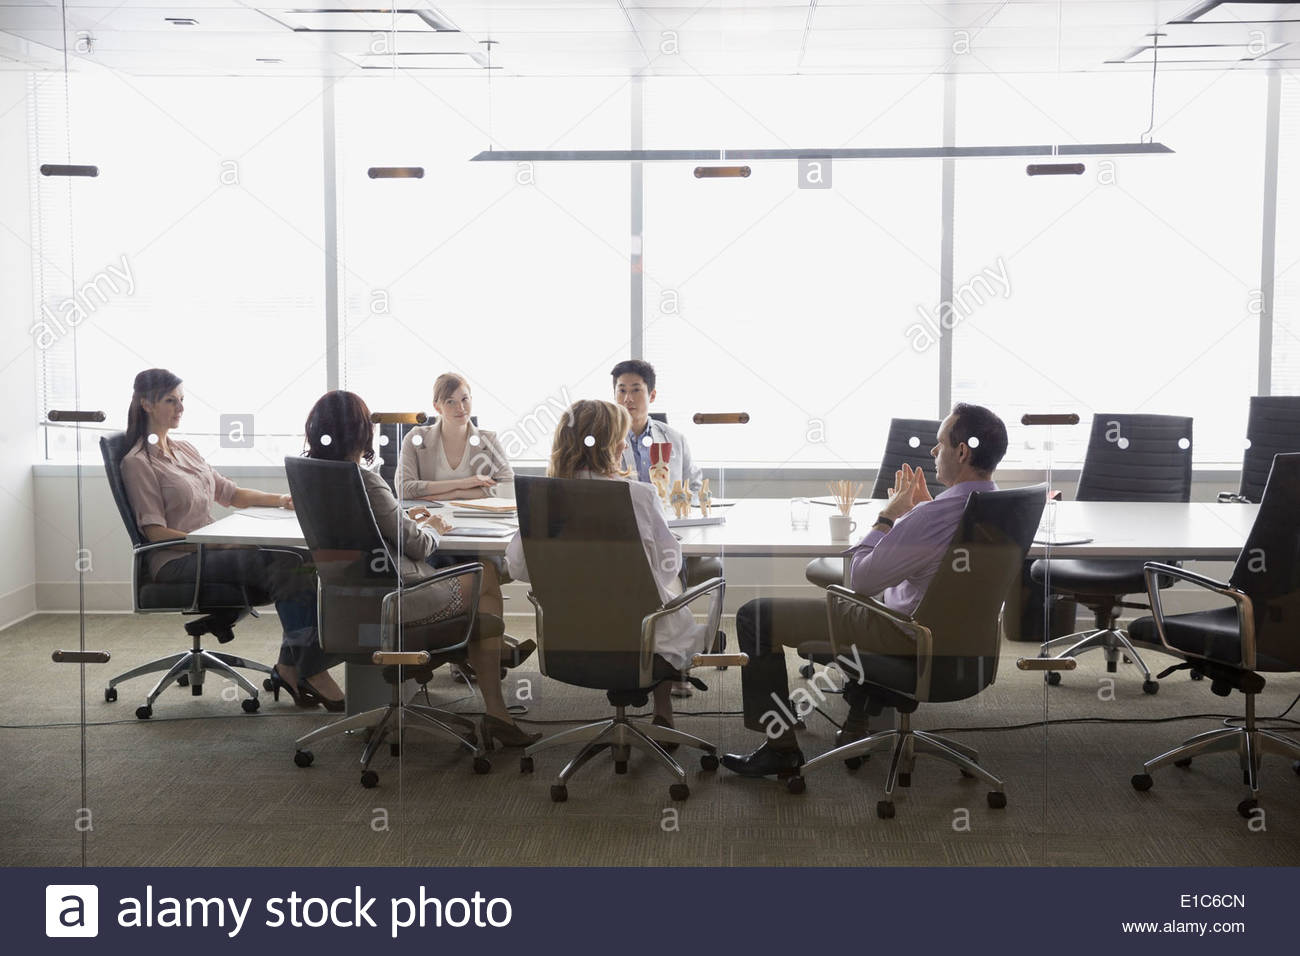 Doctors meeting in conference room - Stock Image